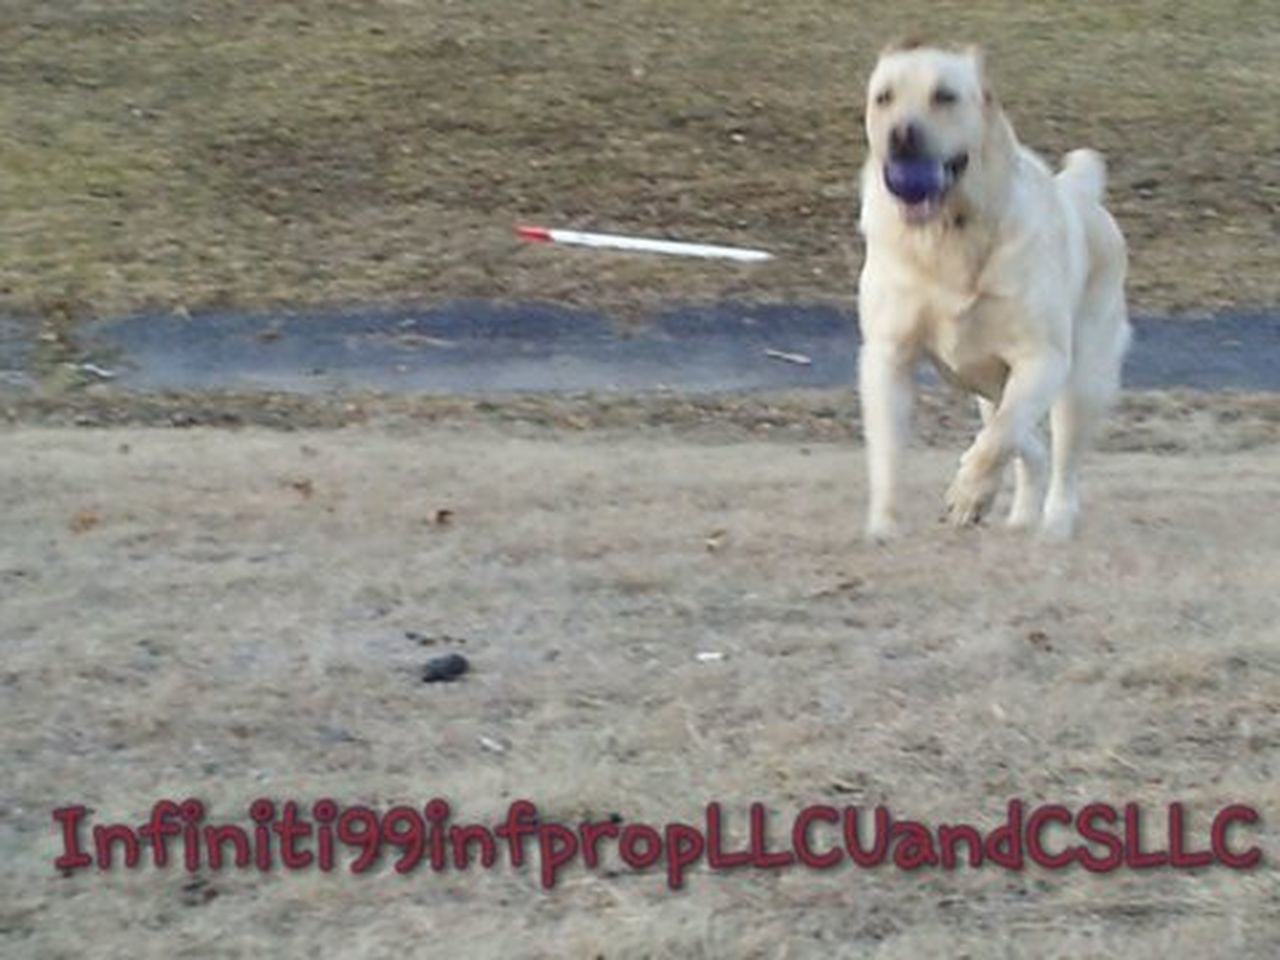 dog, pets, beach, running, one animal, motion, outdoors, sand, domestic animals, day, no people, animal themes, nature, mammal